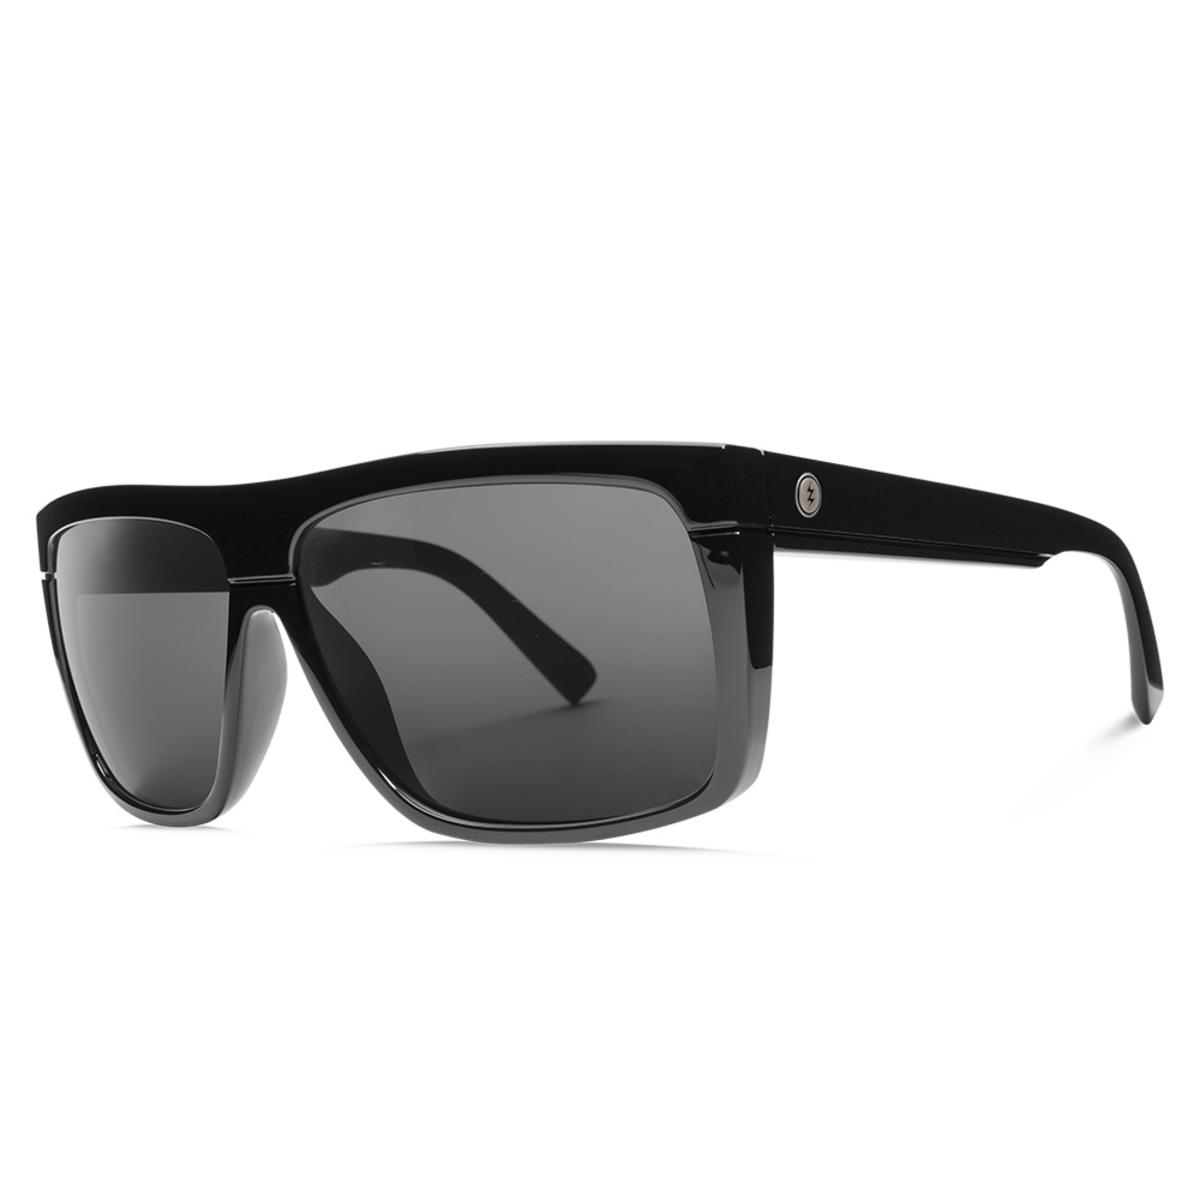 Electric Blacktop Men's Sunglasses